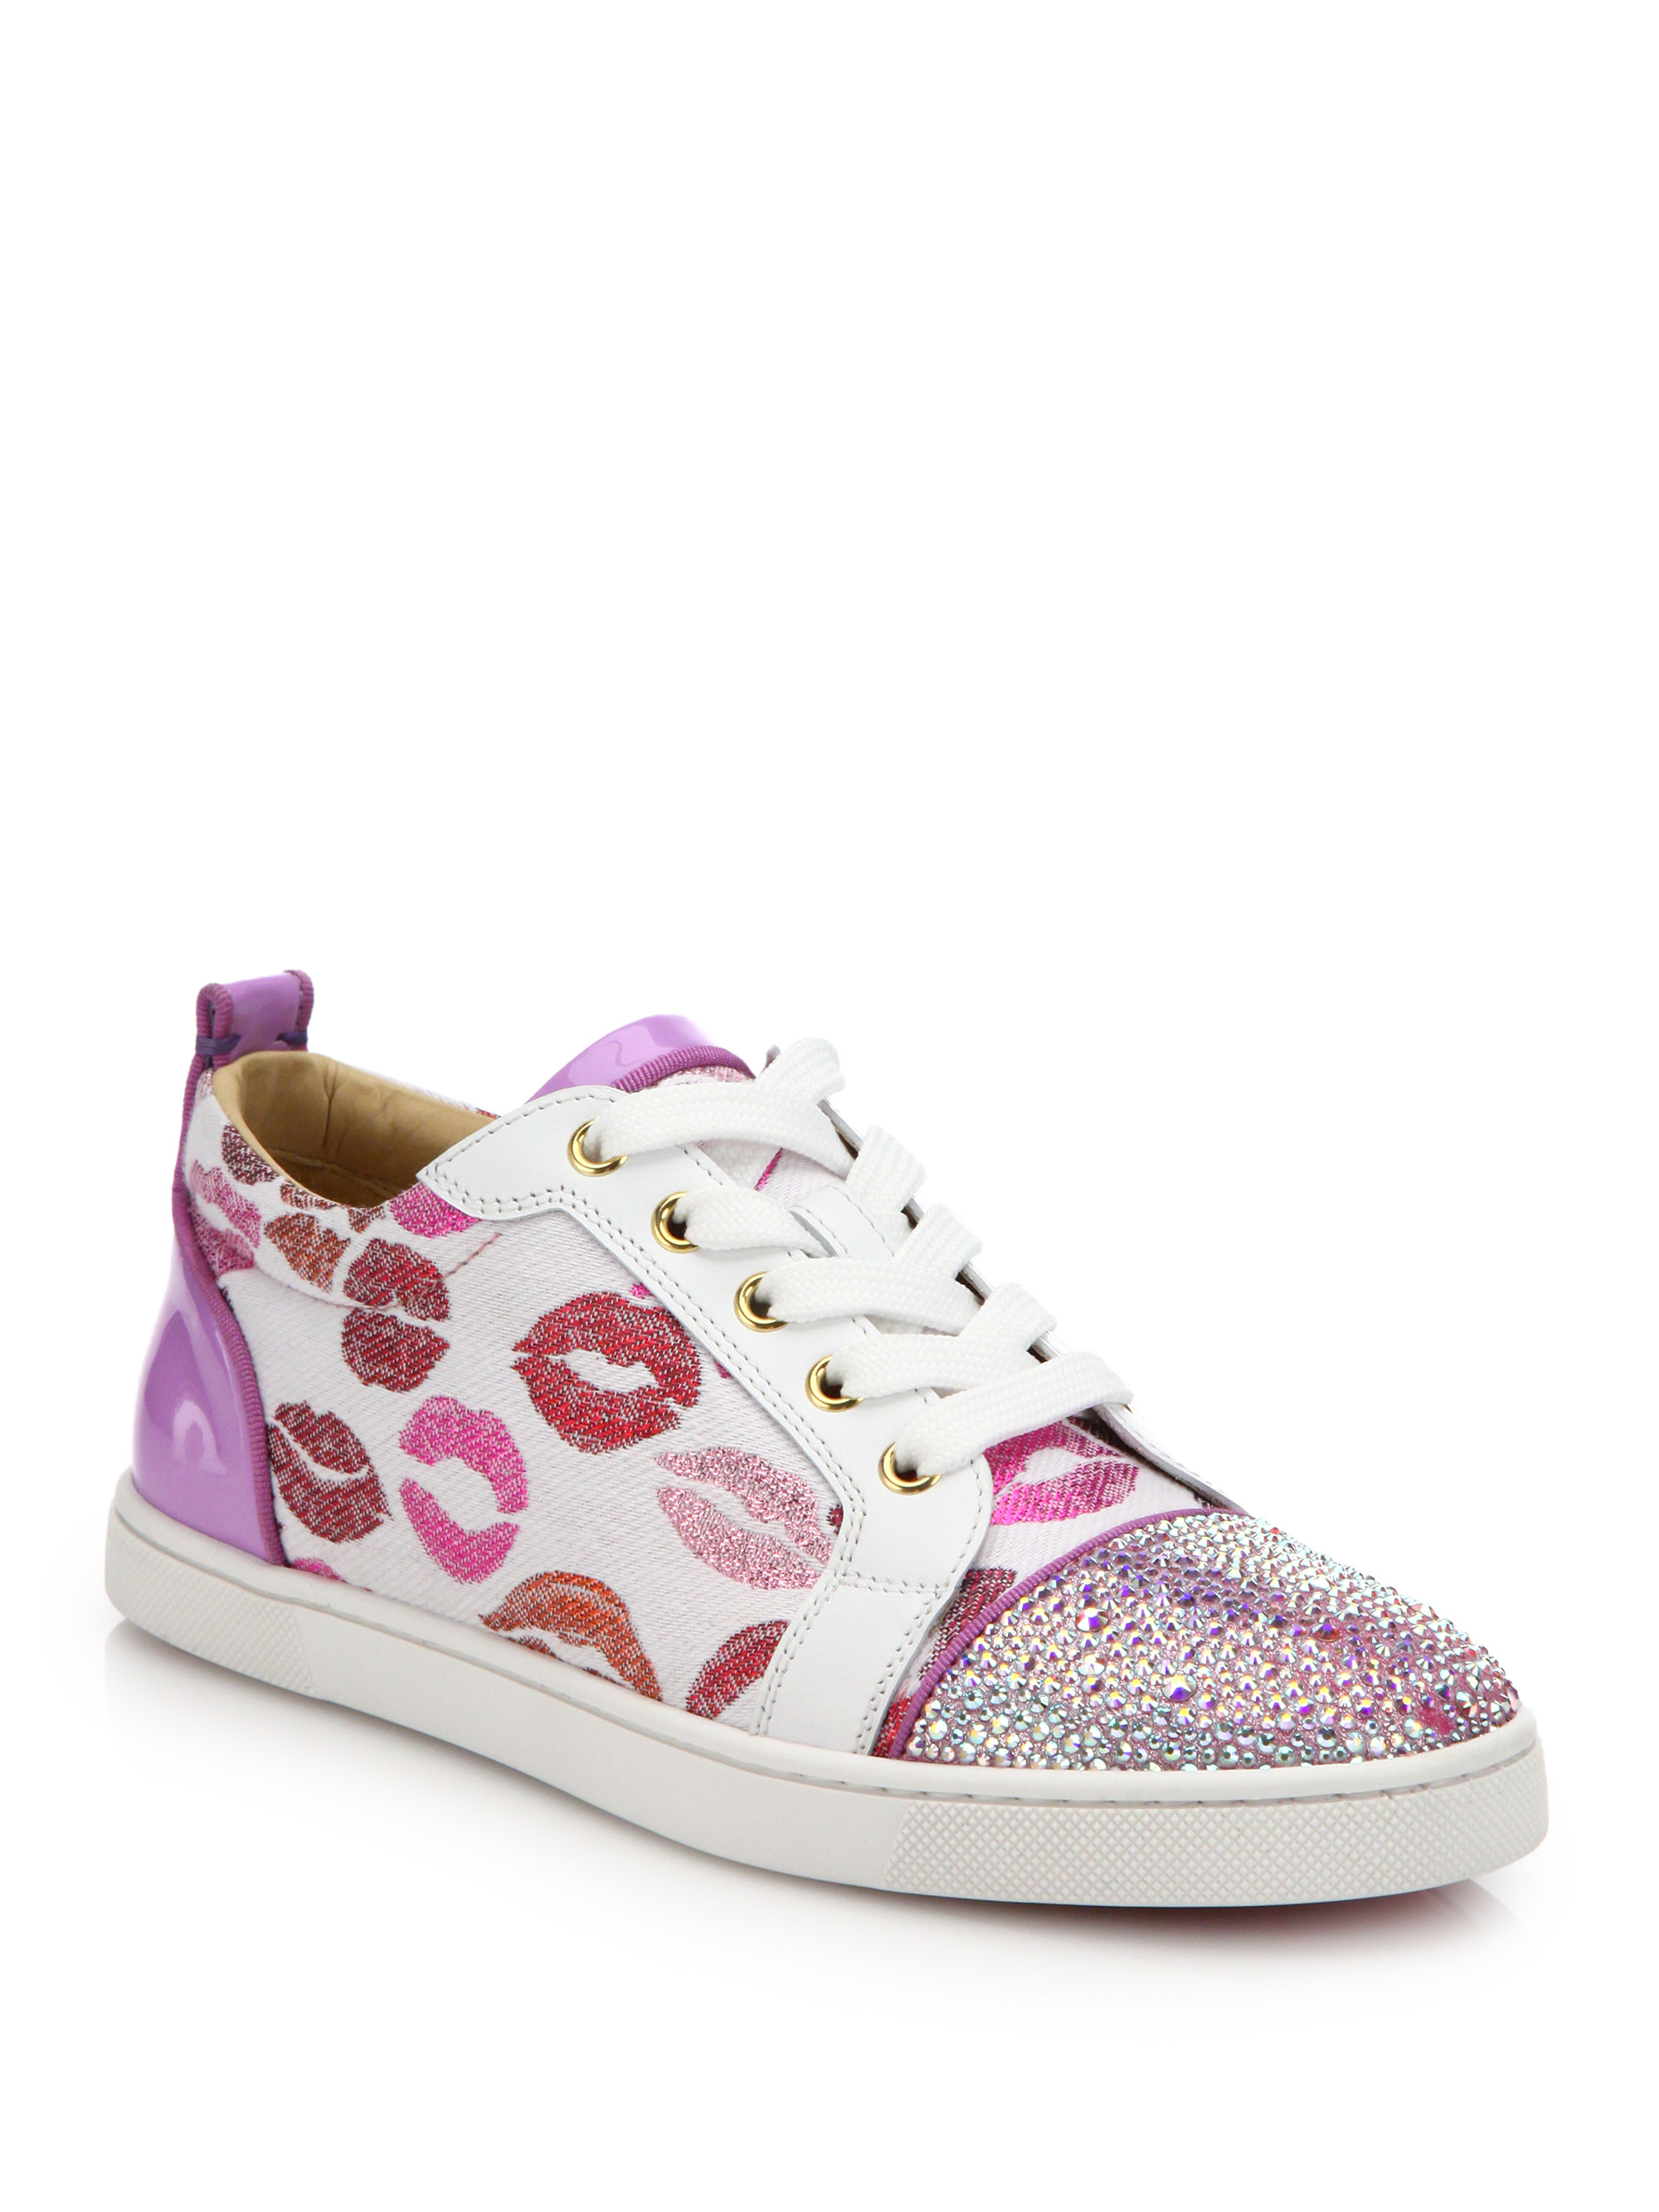 christian louboutin low top lip sneakers lyst. Black Bedroom Furniture Sets. Home Design Ideas